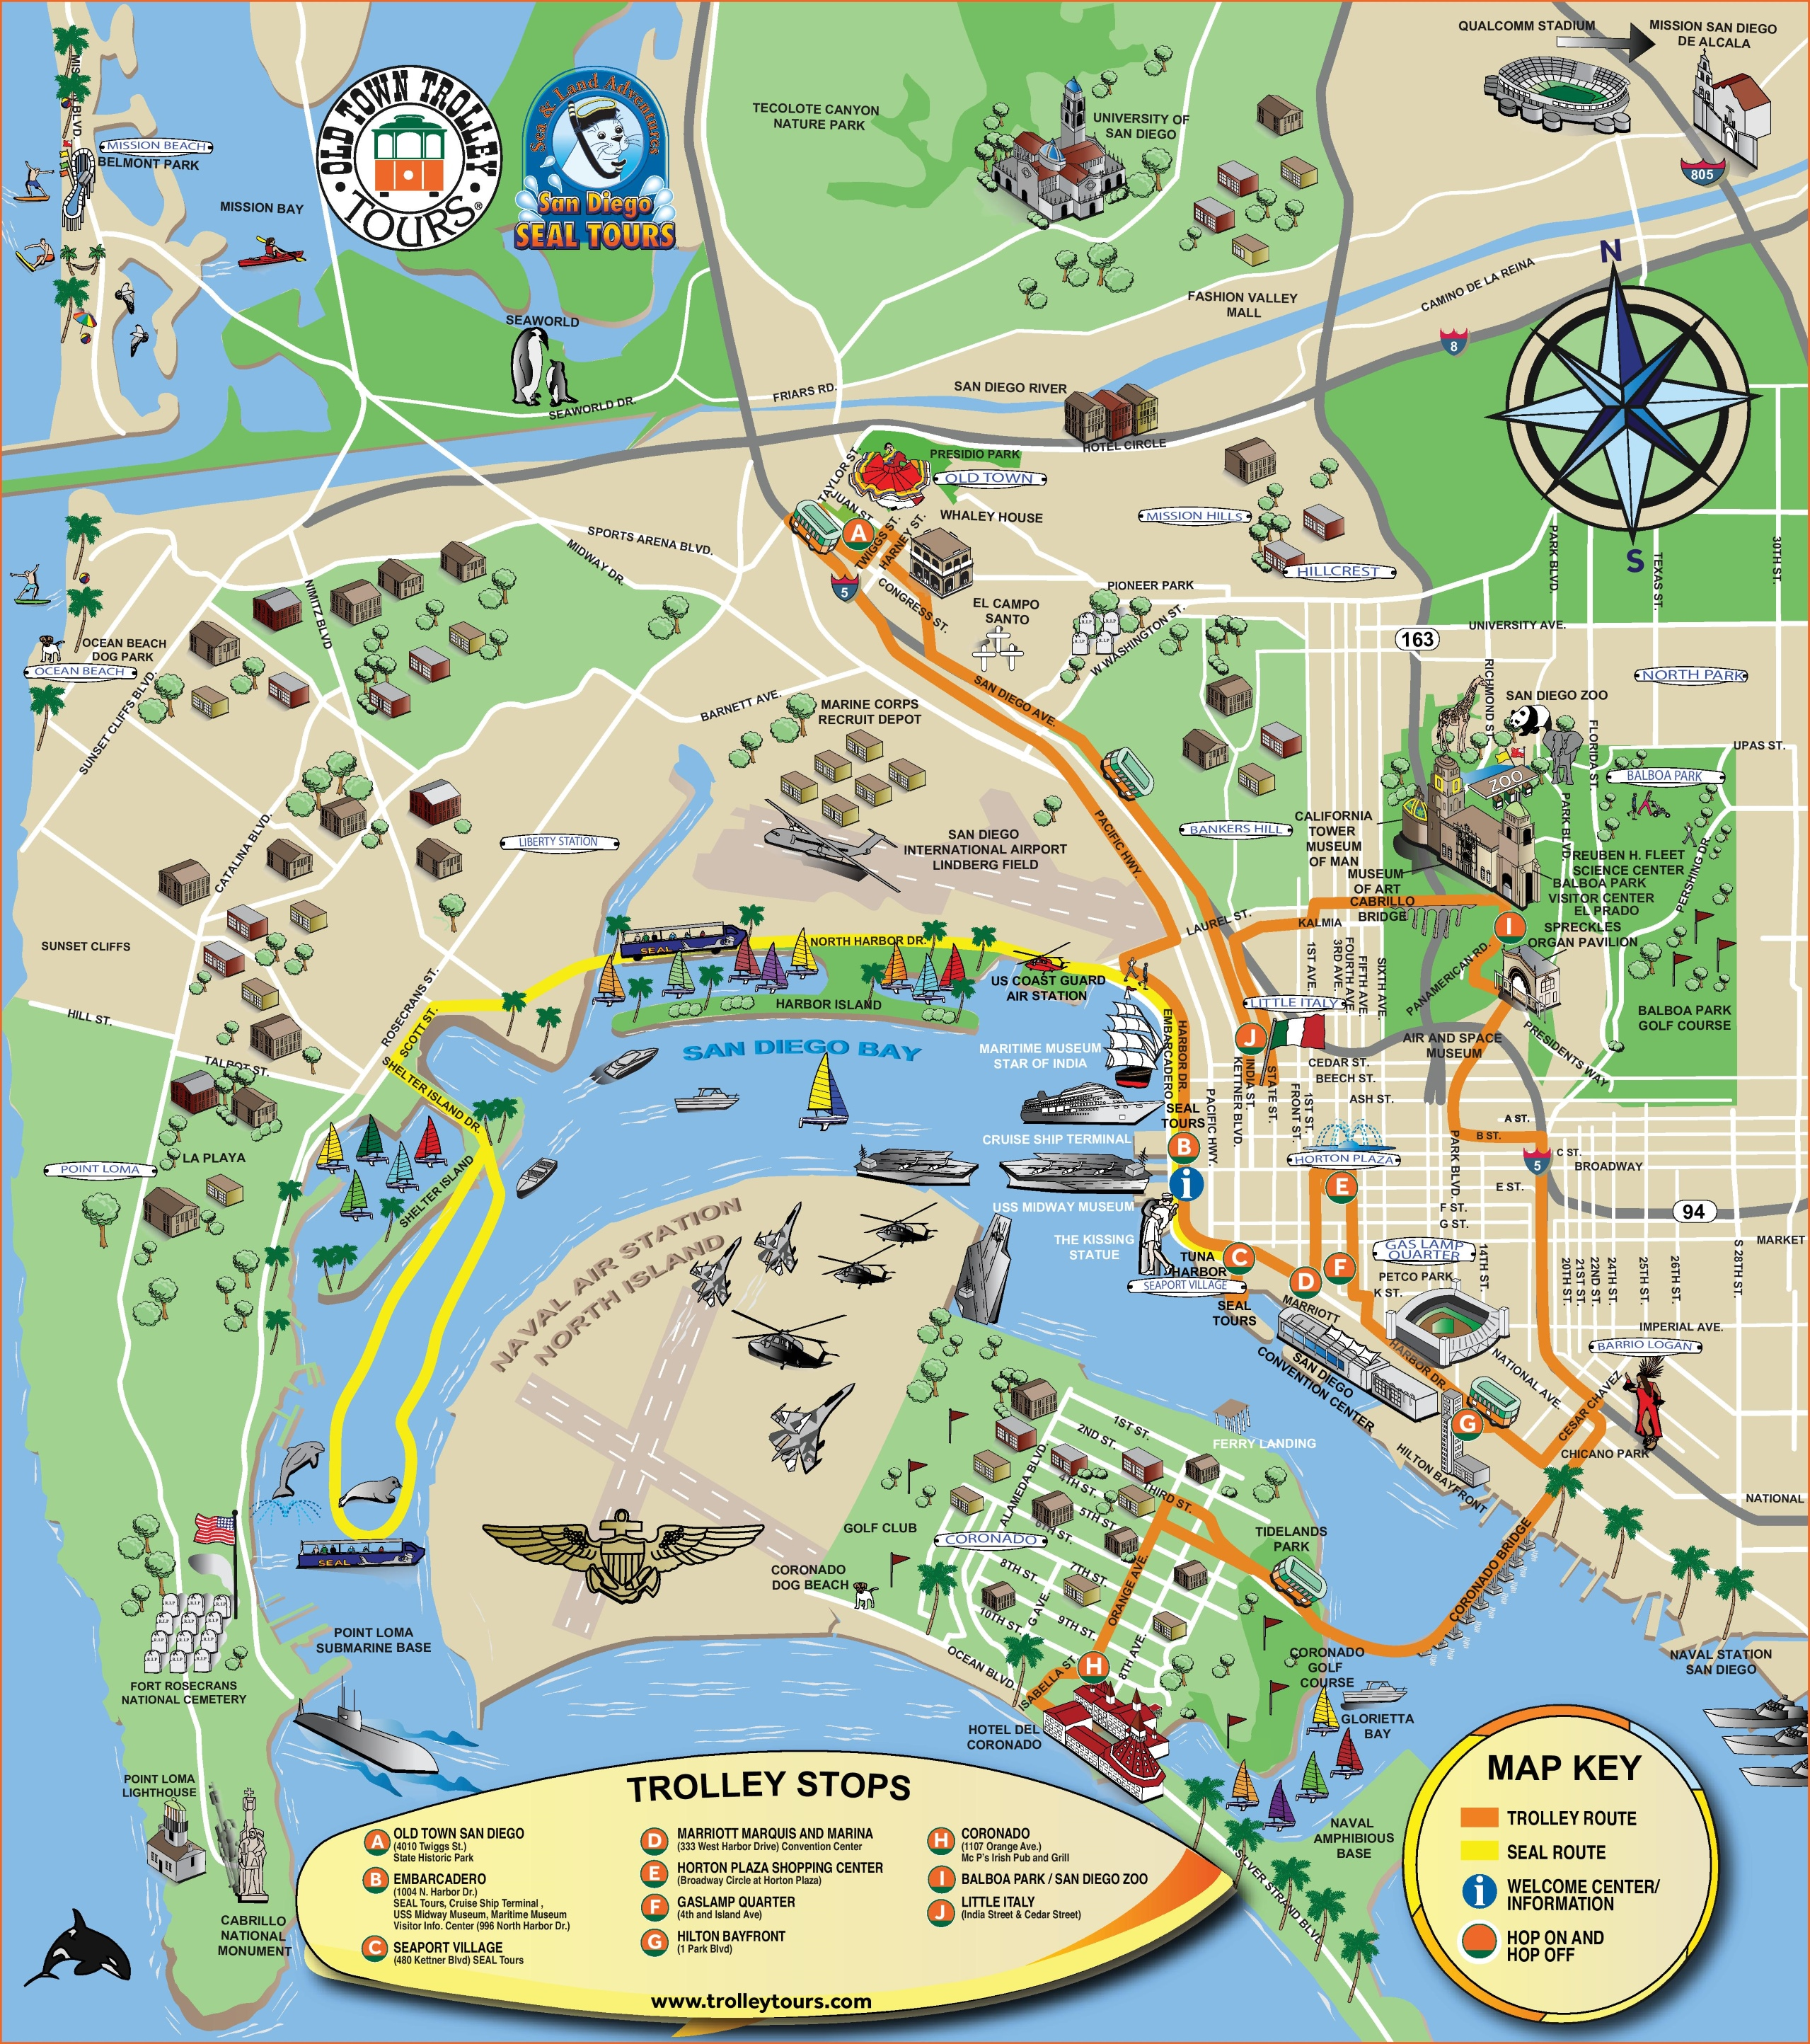 San Diego tourist attractions map – San Jose Tourist Attractions Map